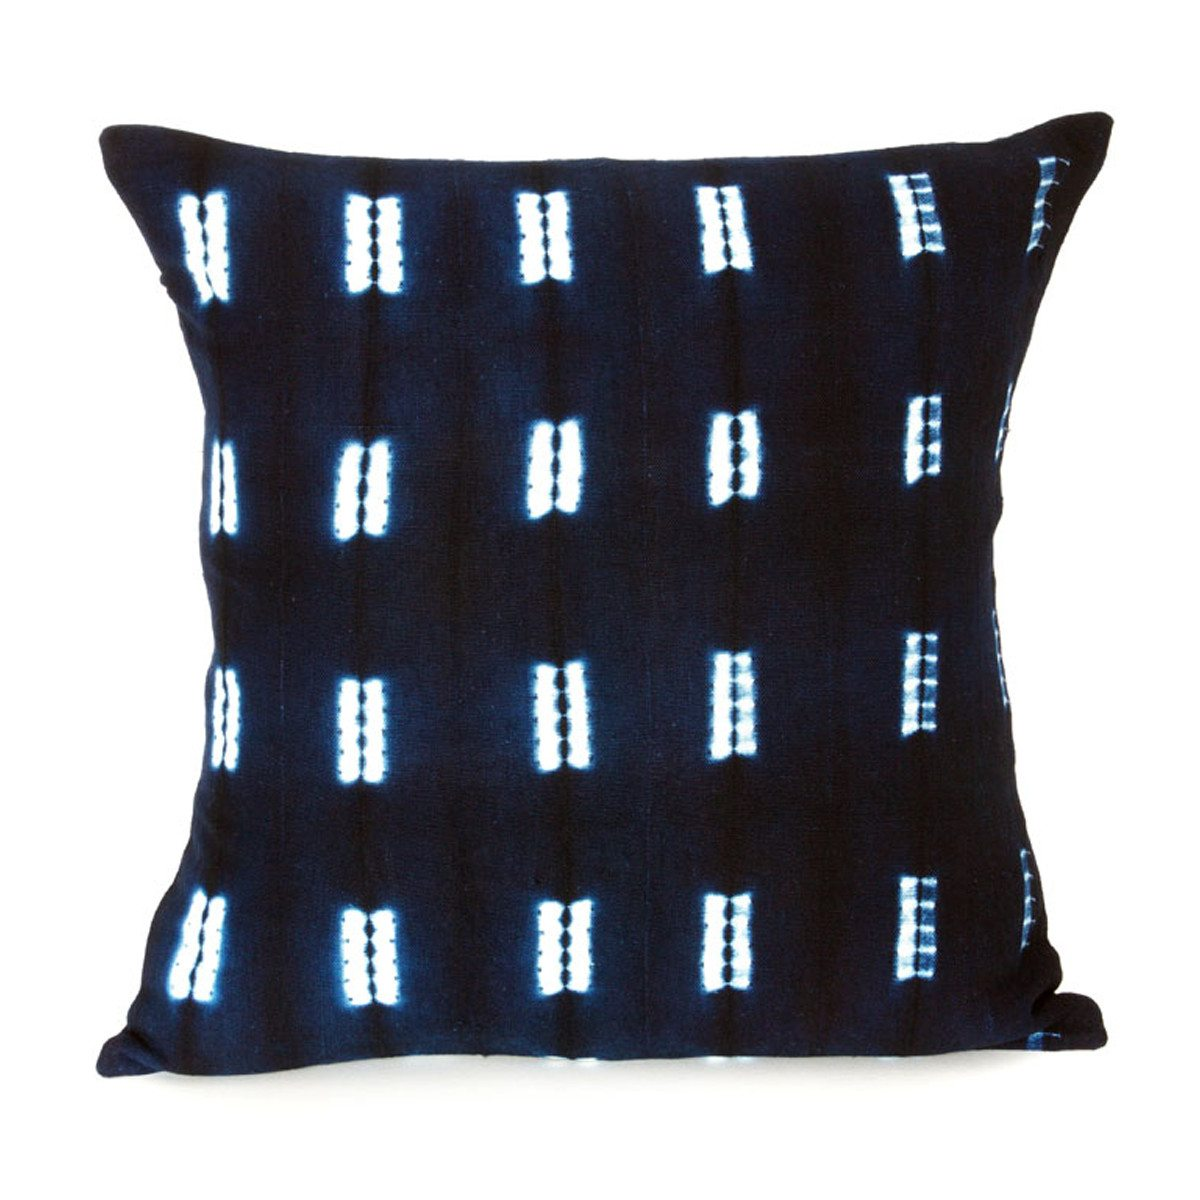 malian-indigo-pillow-1-shopceladon